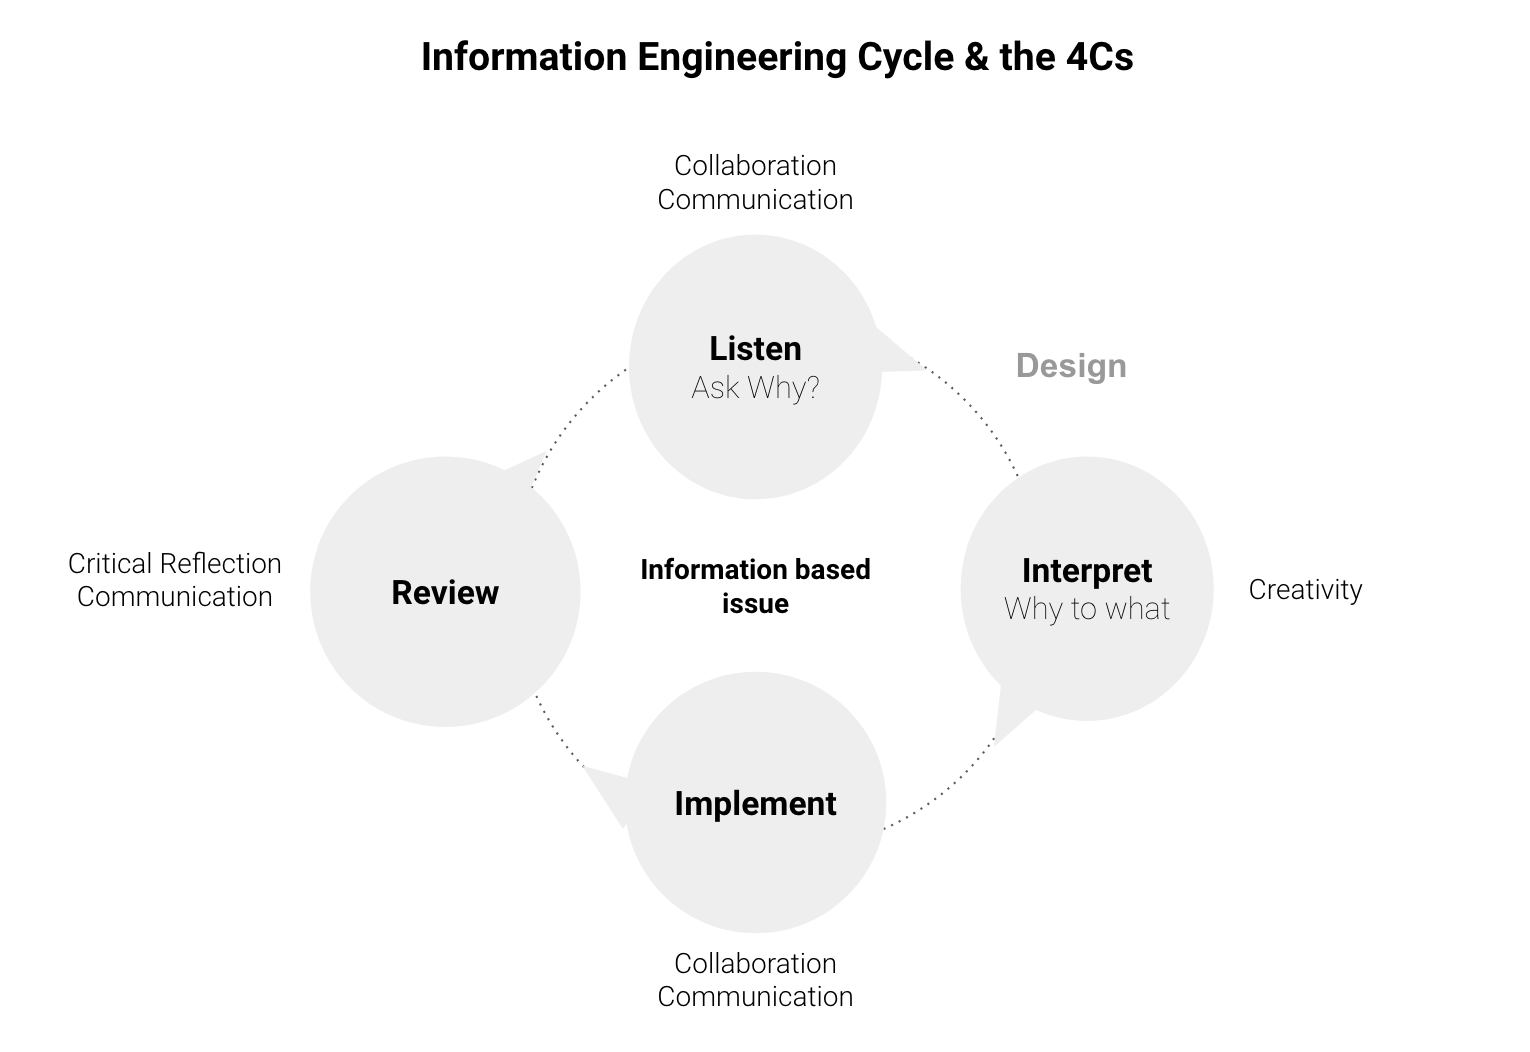 Information Engineering and the 4Cs